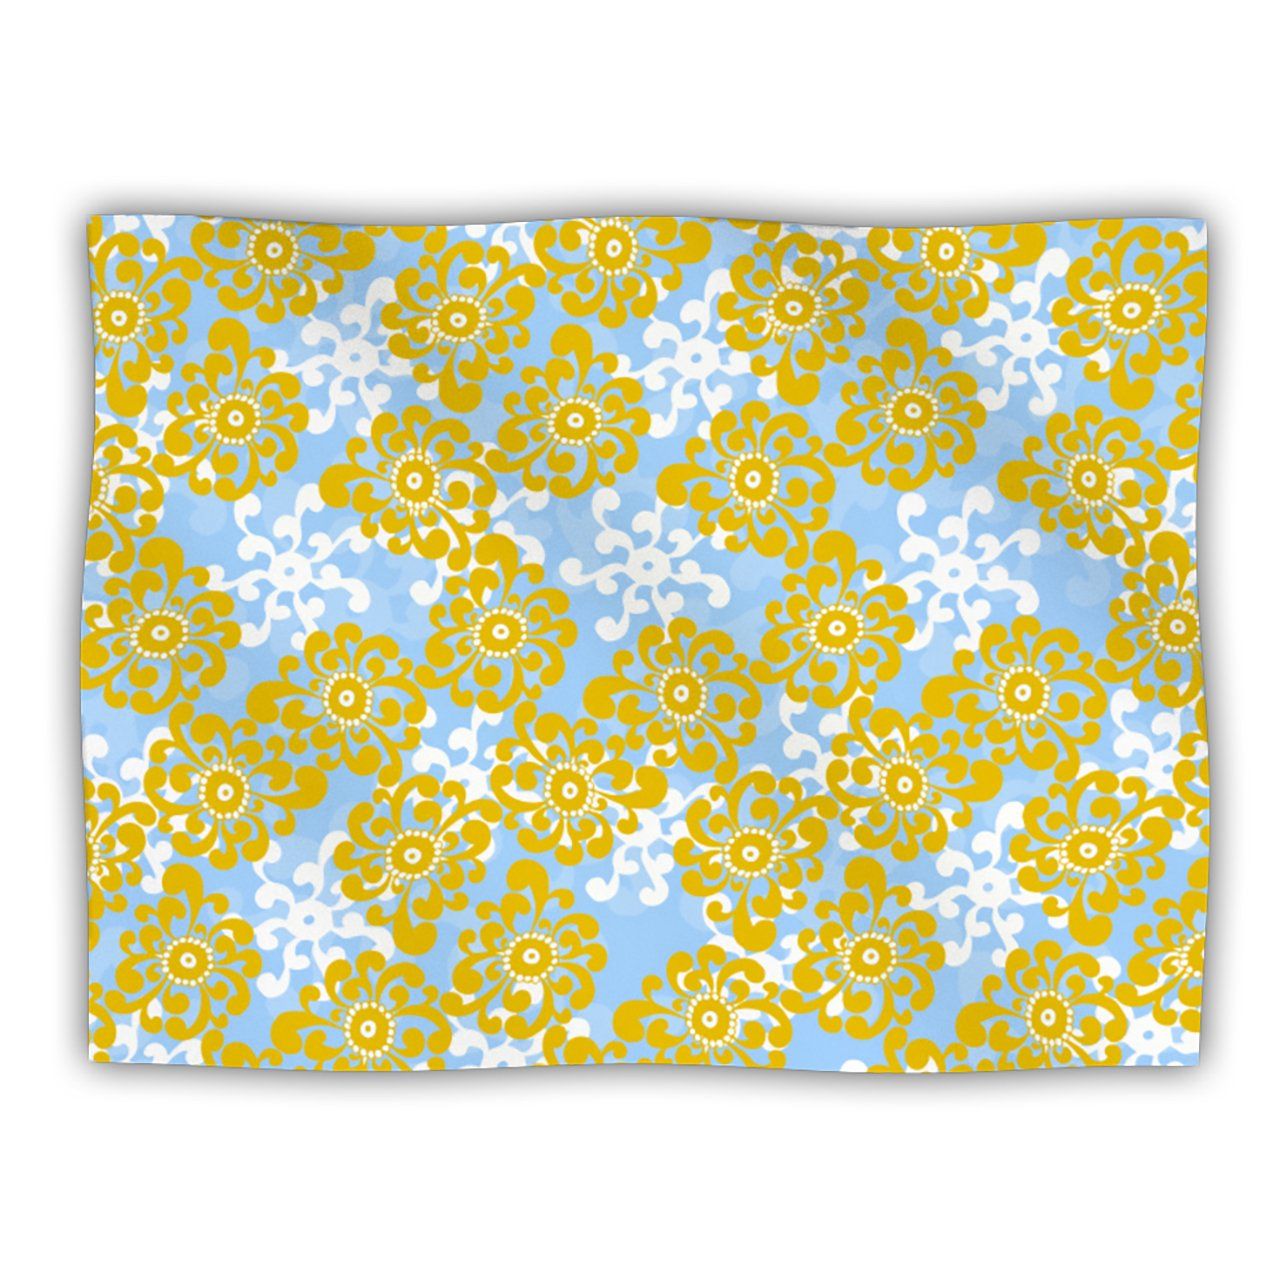 Kess InHouse Nandita Singh  bluee and Yellow Flowers Alternate  gold Floral Pet Dog Blanket, 60 by 50-Inch